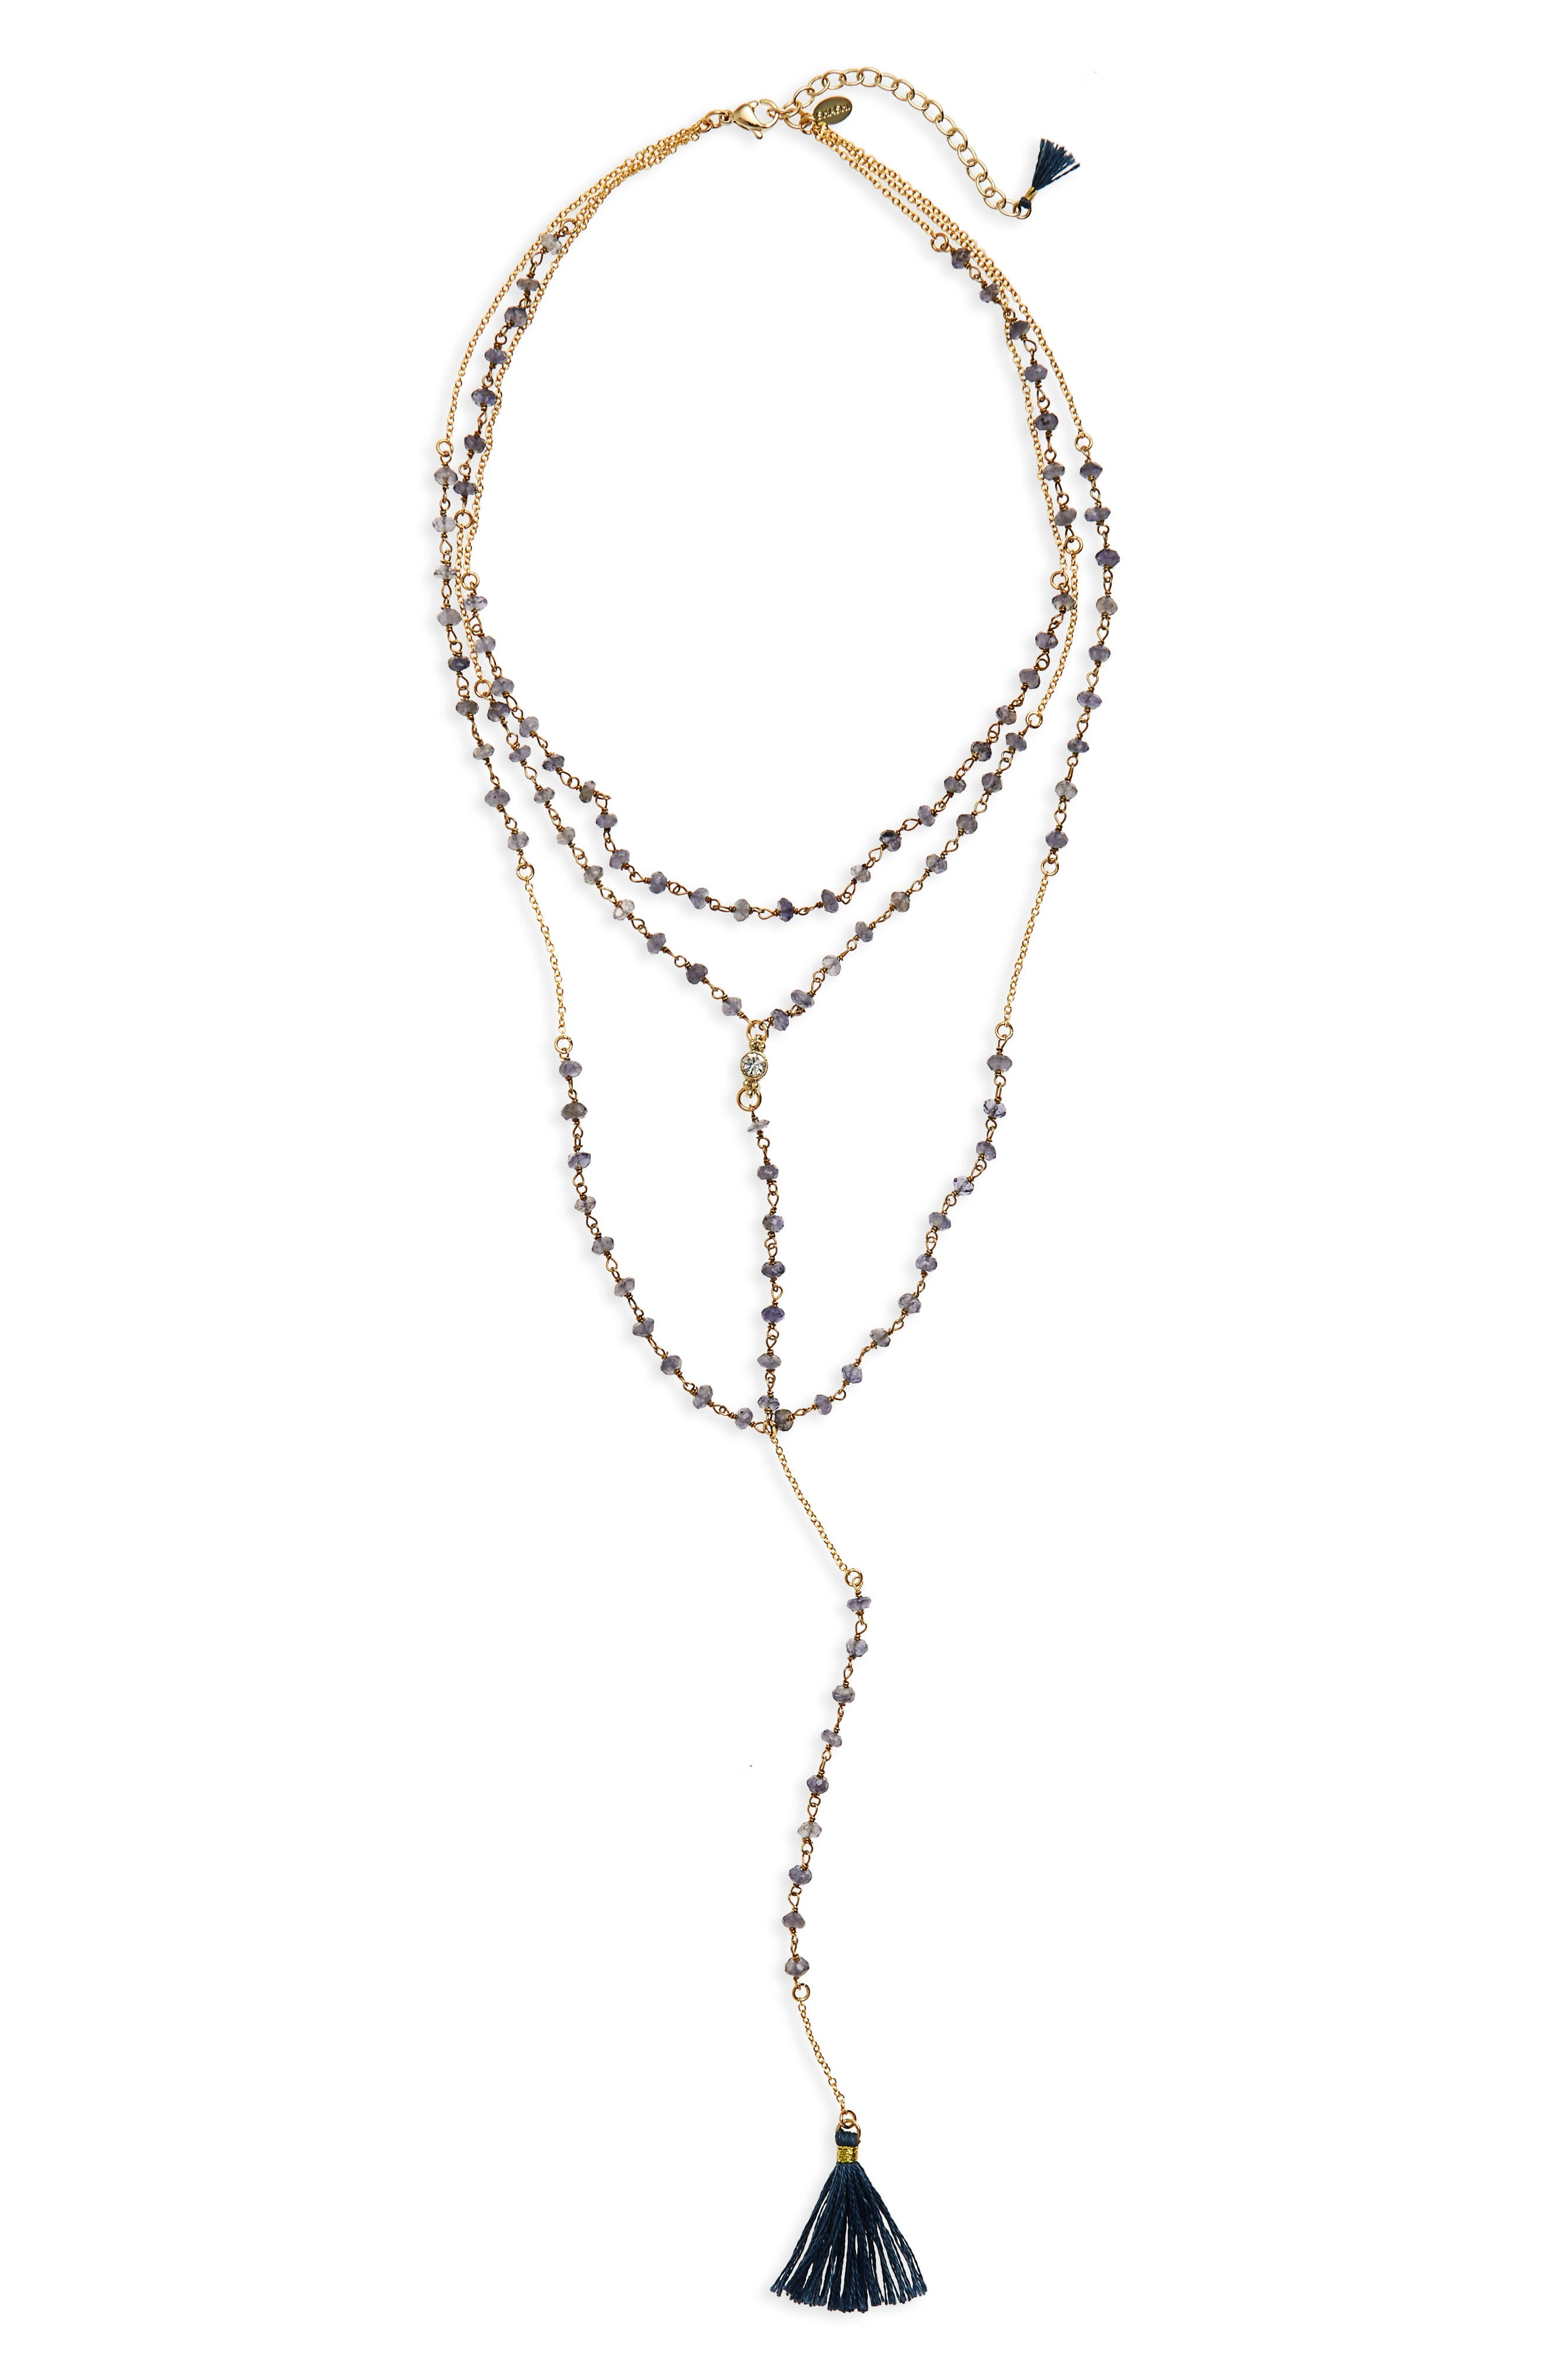 Enne Layered Lariat Necklace,                         Main,                         color, Yellow Gold/ Iolite